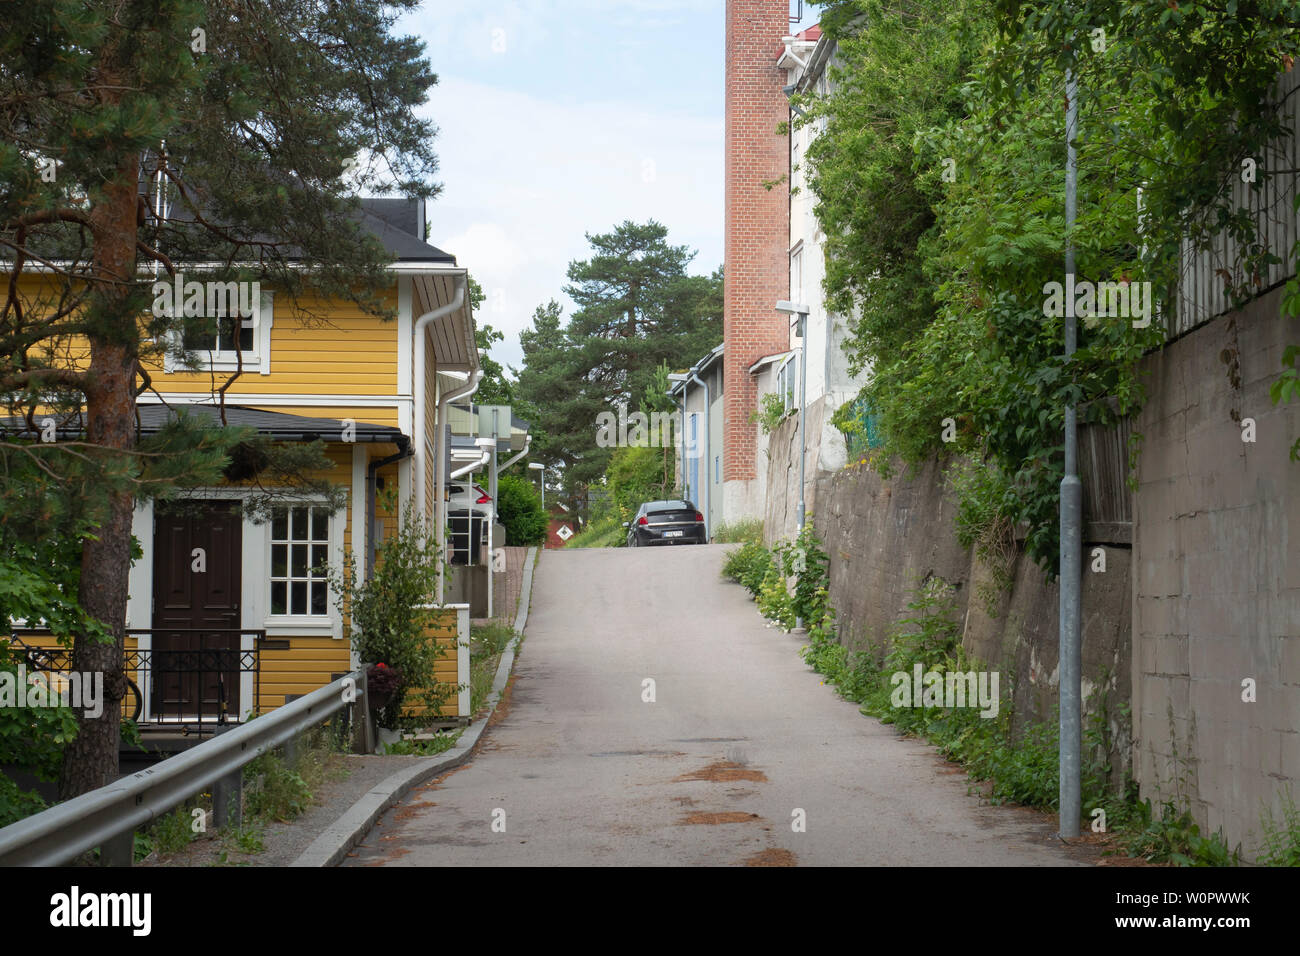 Streets of Old Pispala in Tampere Finland - Stock Image